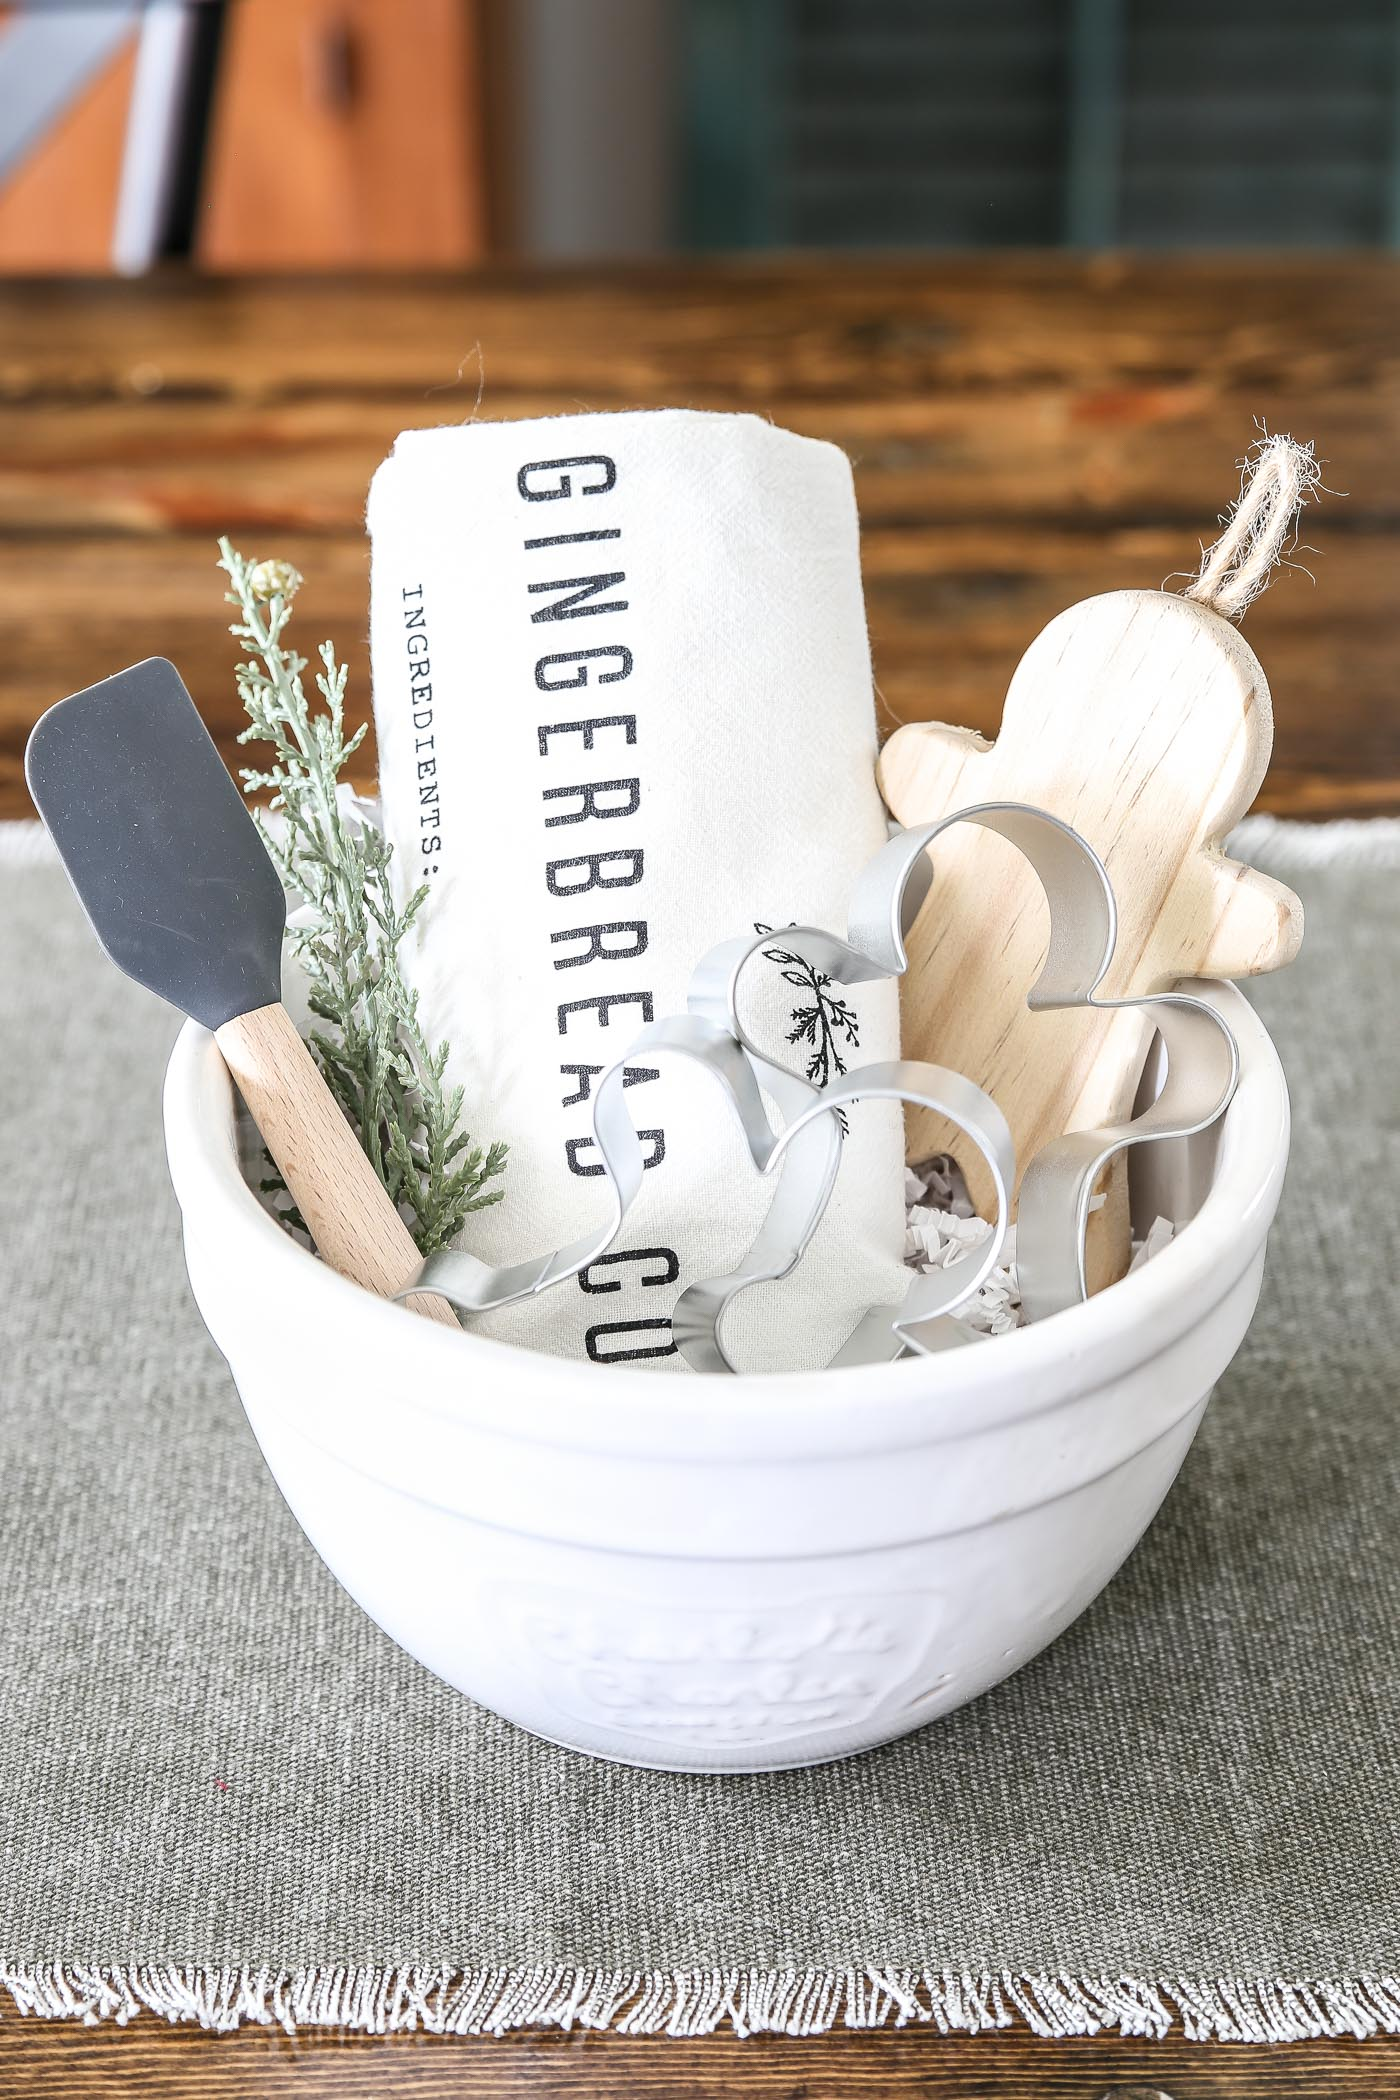 Five Beautiful Hostess Gift Baskets